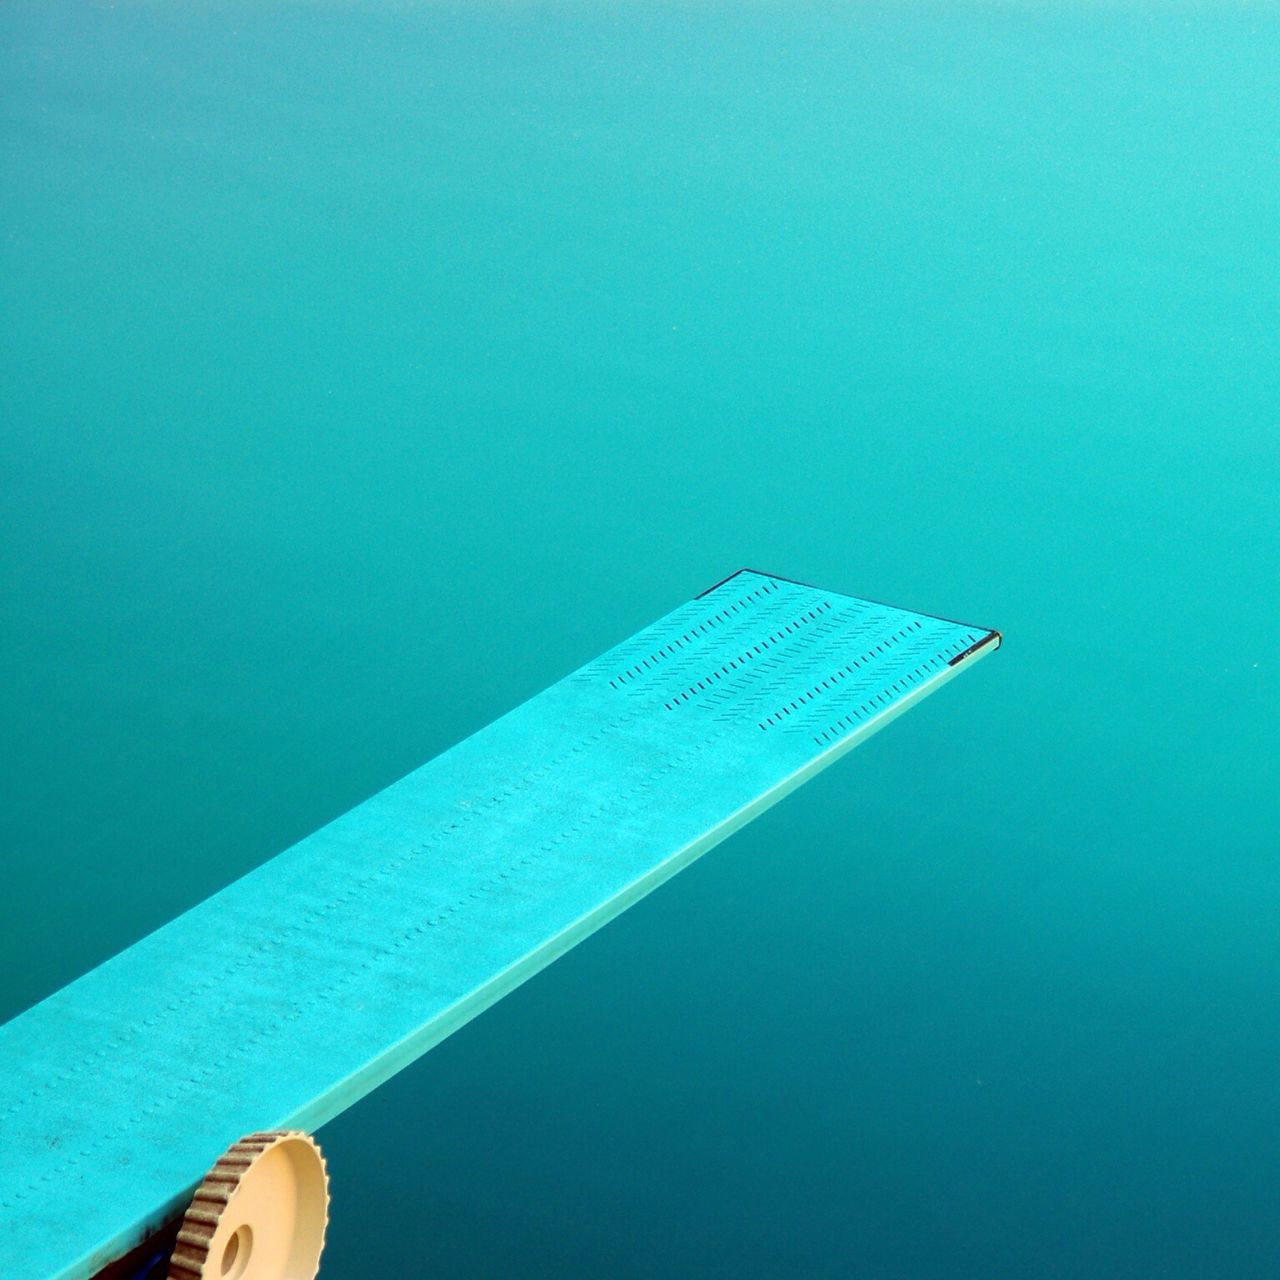 Bestensee, Blue, Copy Space, Day, Diving Board